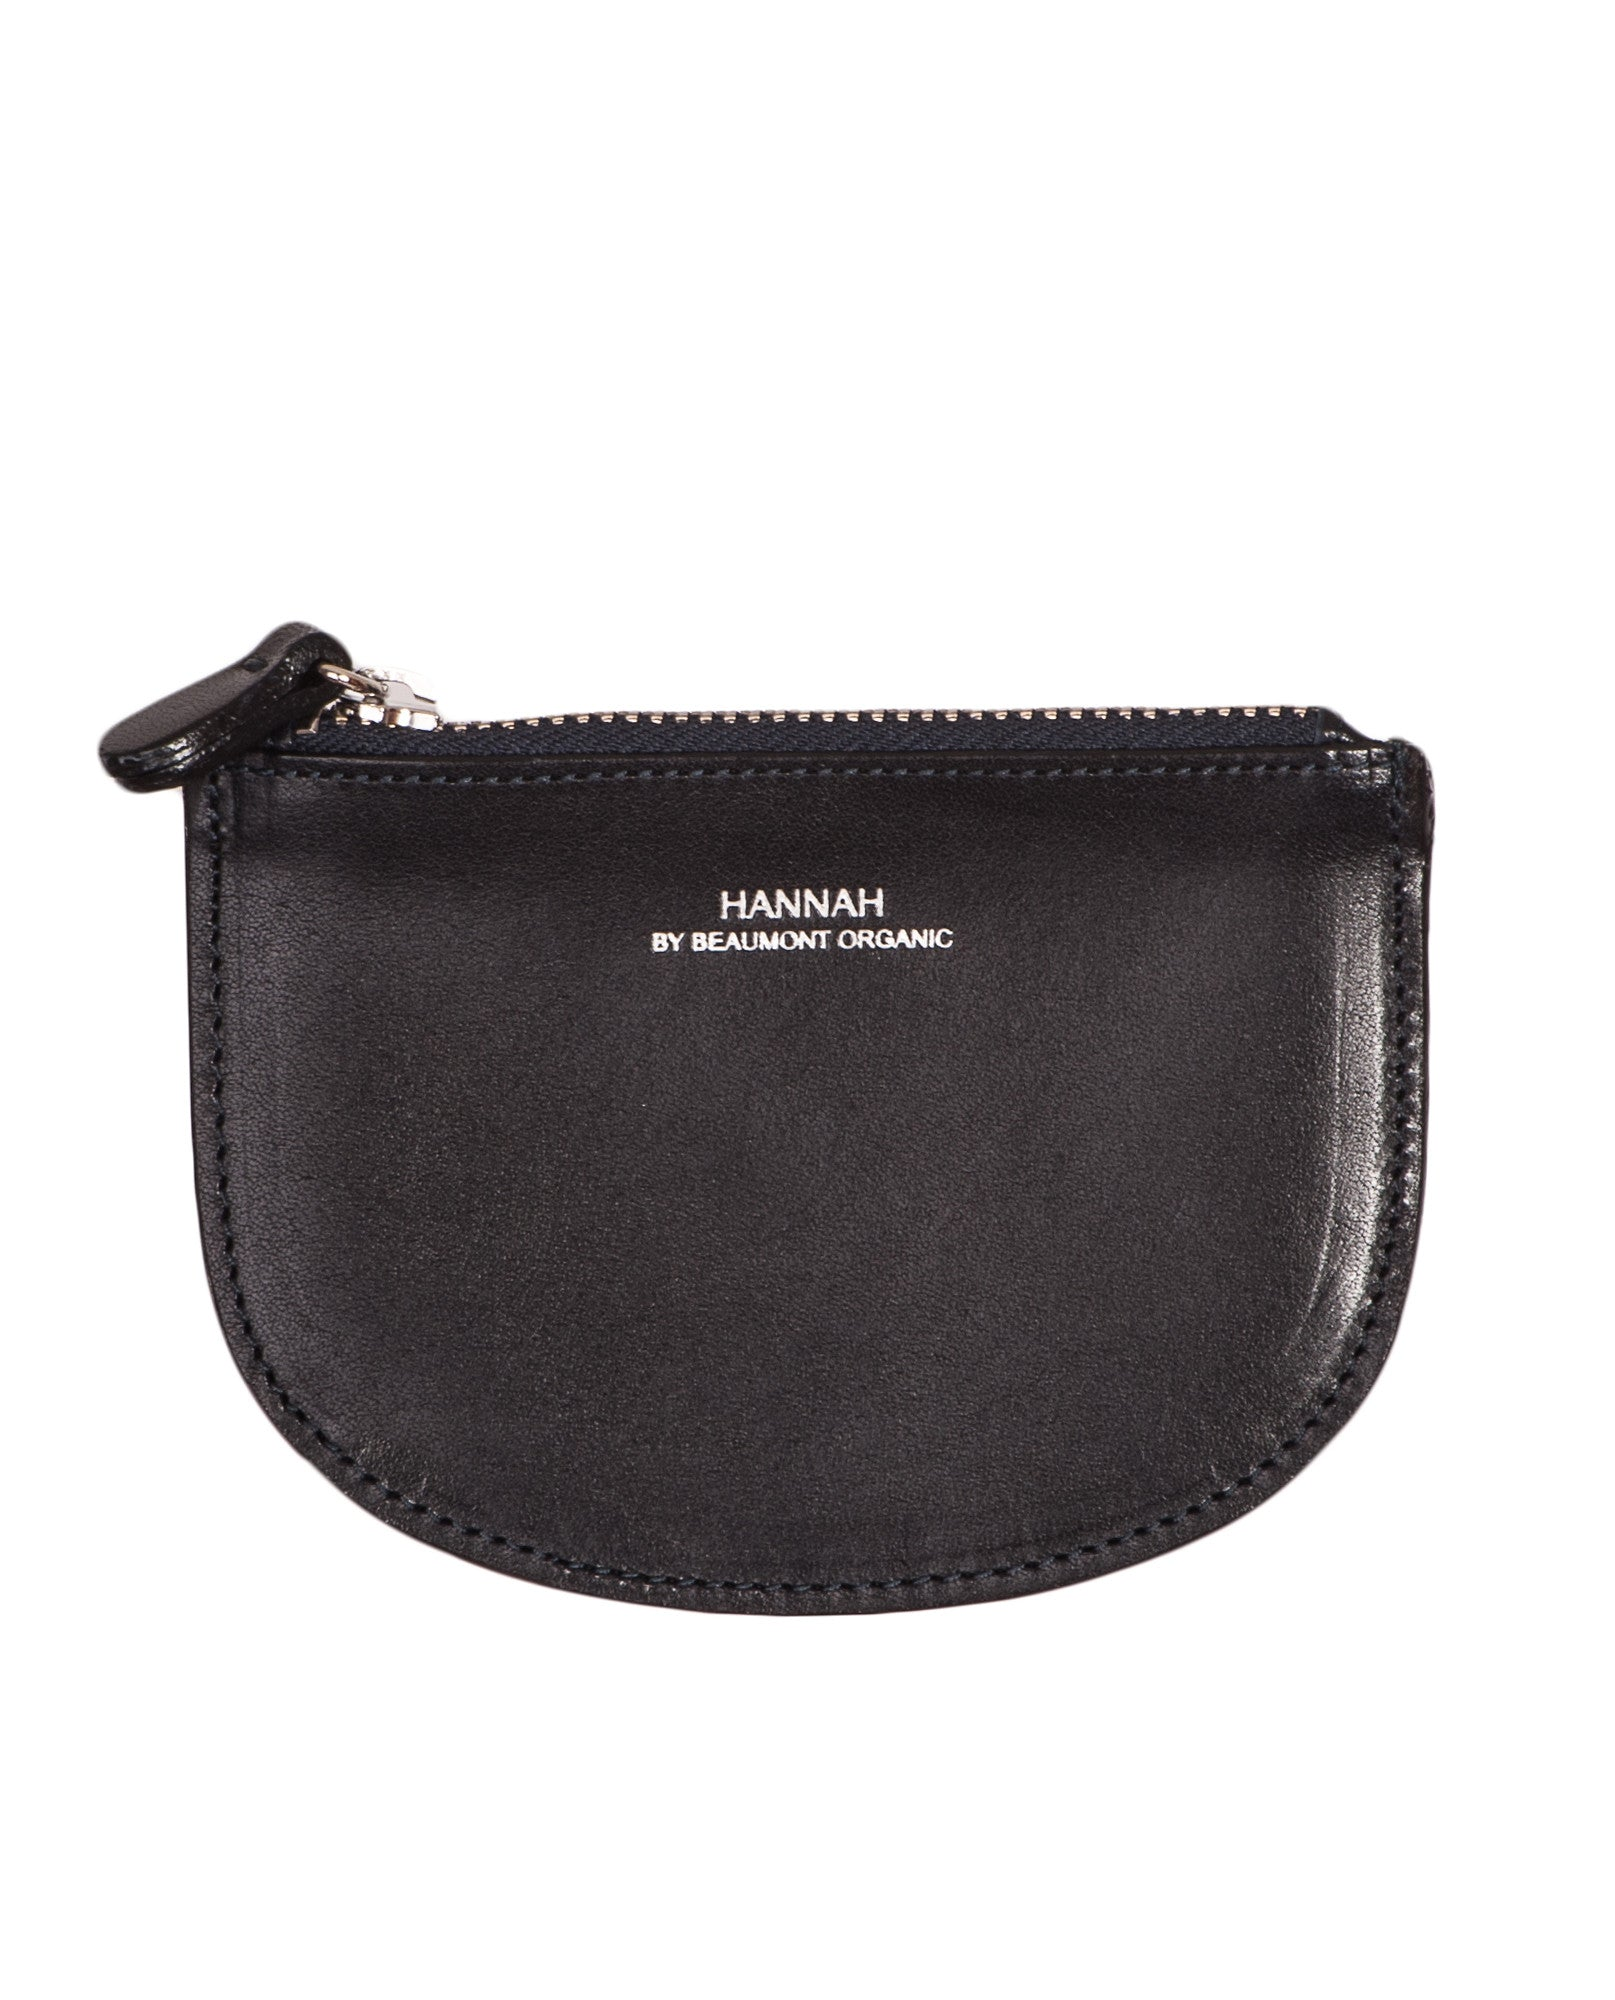 PARIS Leather Coin Purse In Black